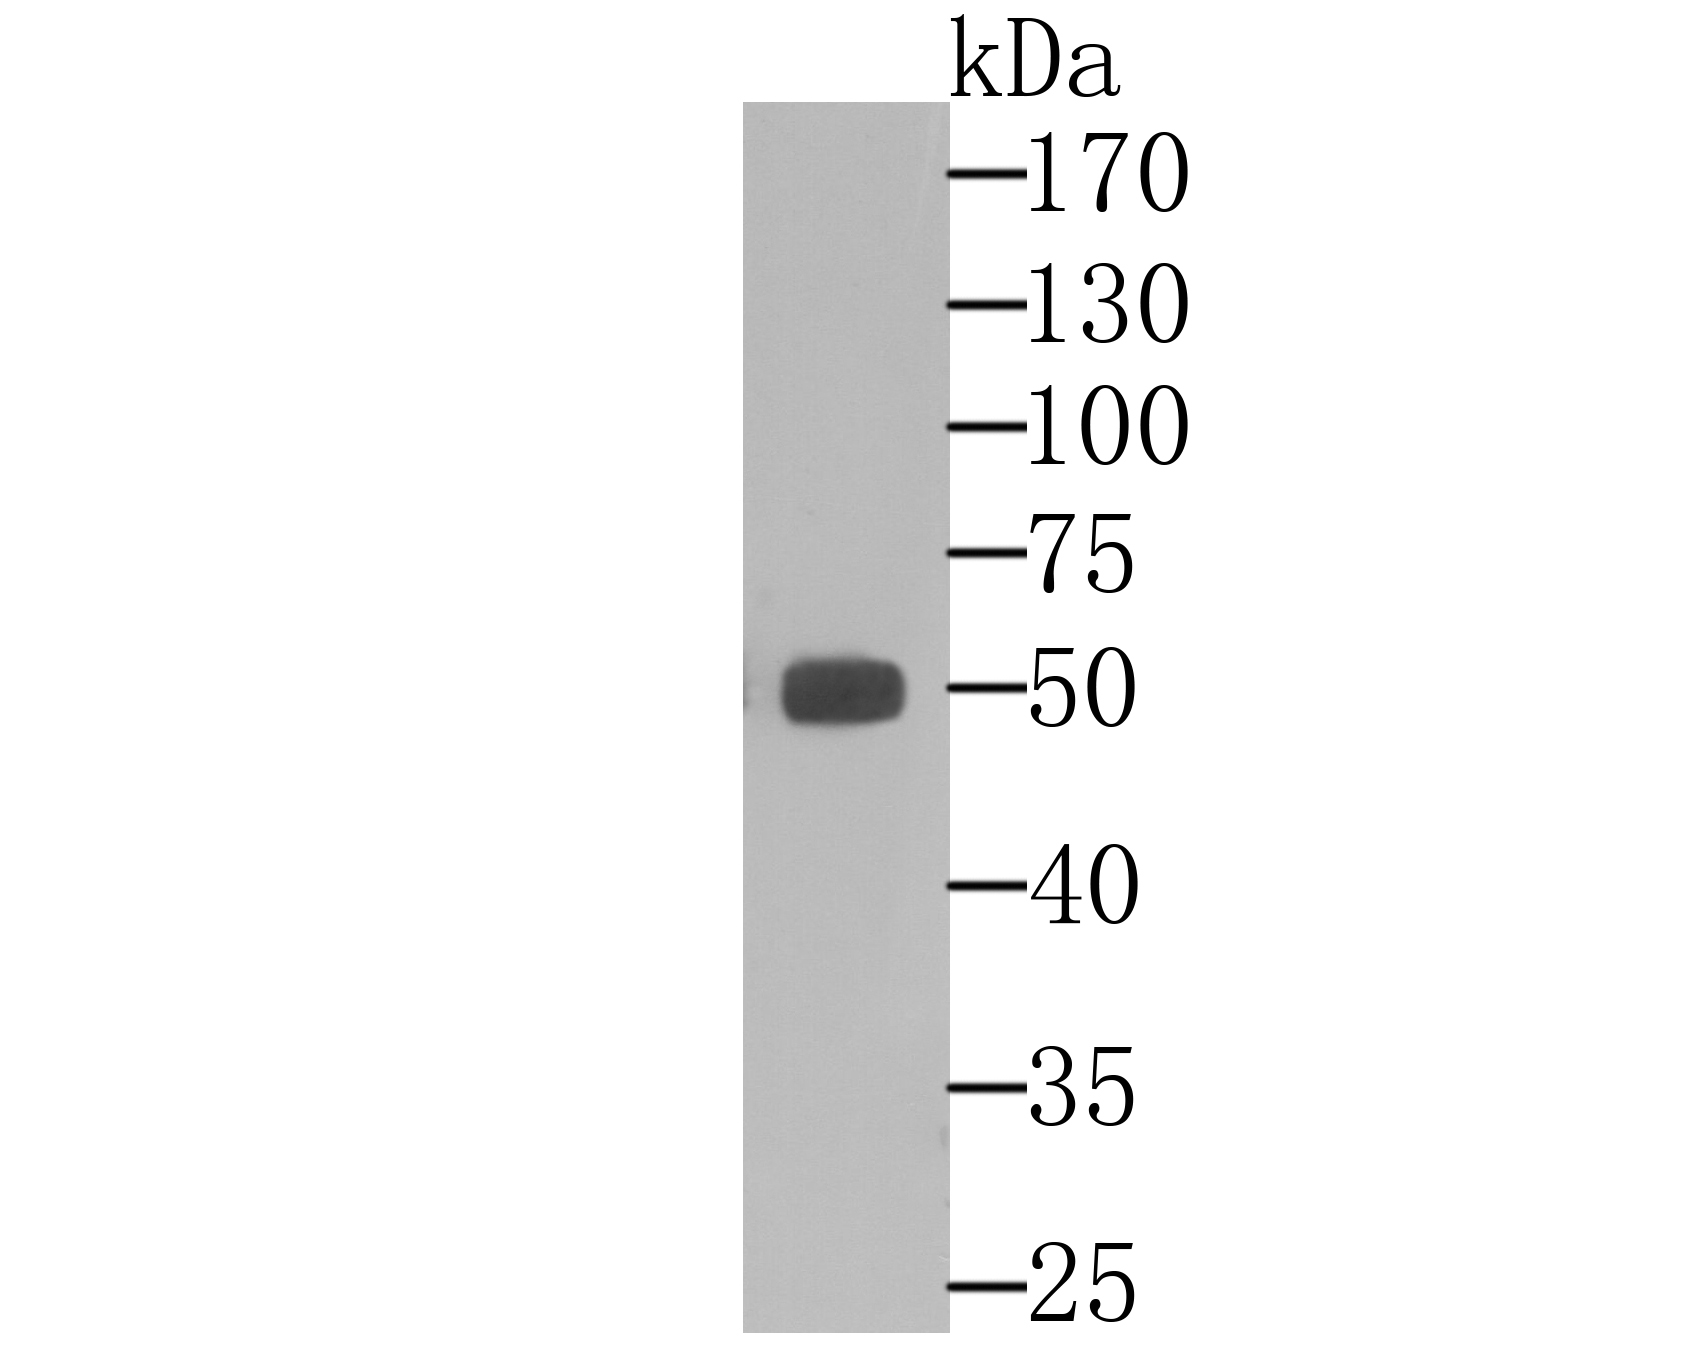 Western blot analysis of ALDH1A1 on human liver tissue lysate using anti-ALDH1A1 antibody at 1/10,000 dilution.